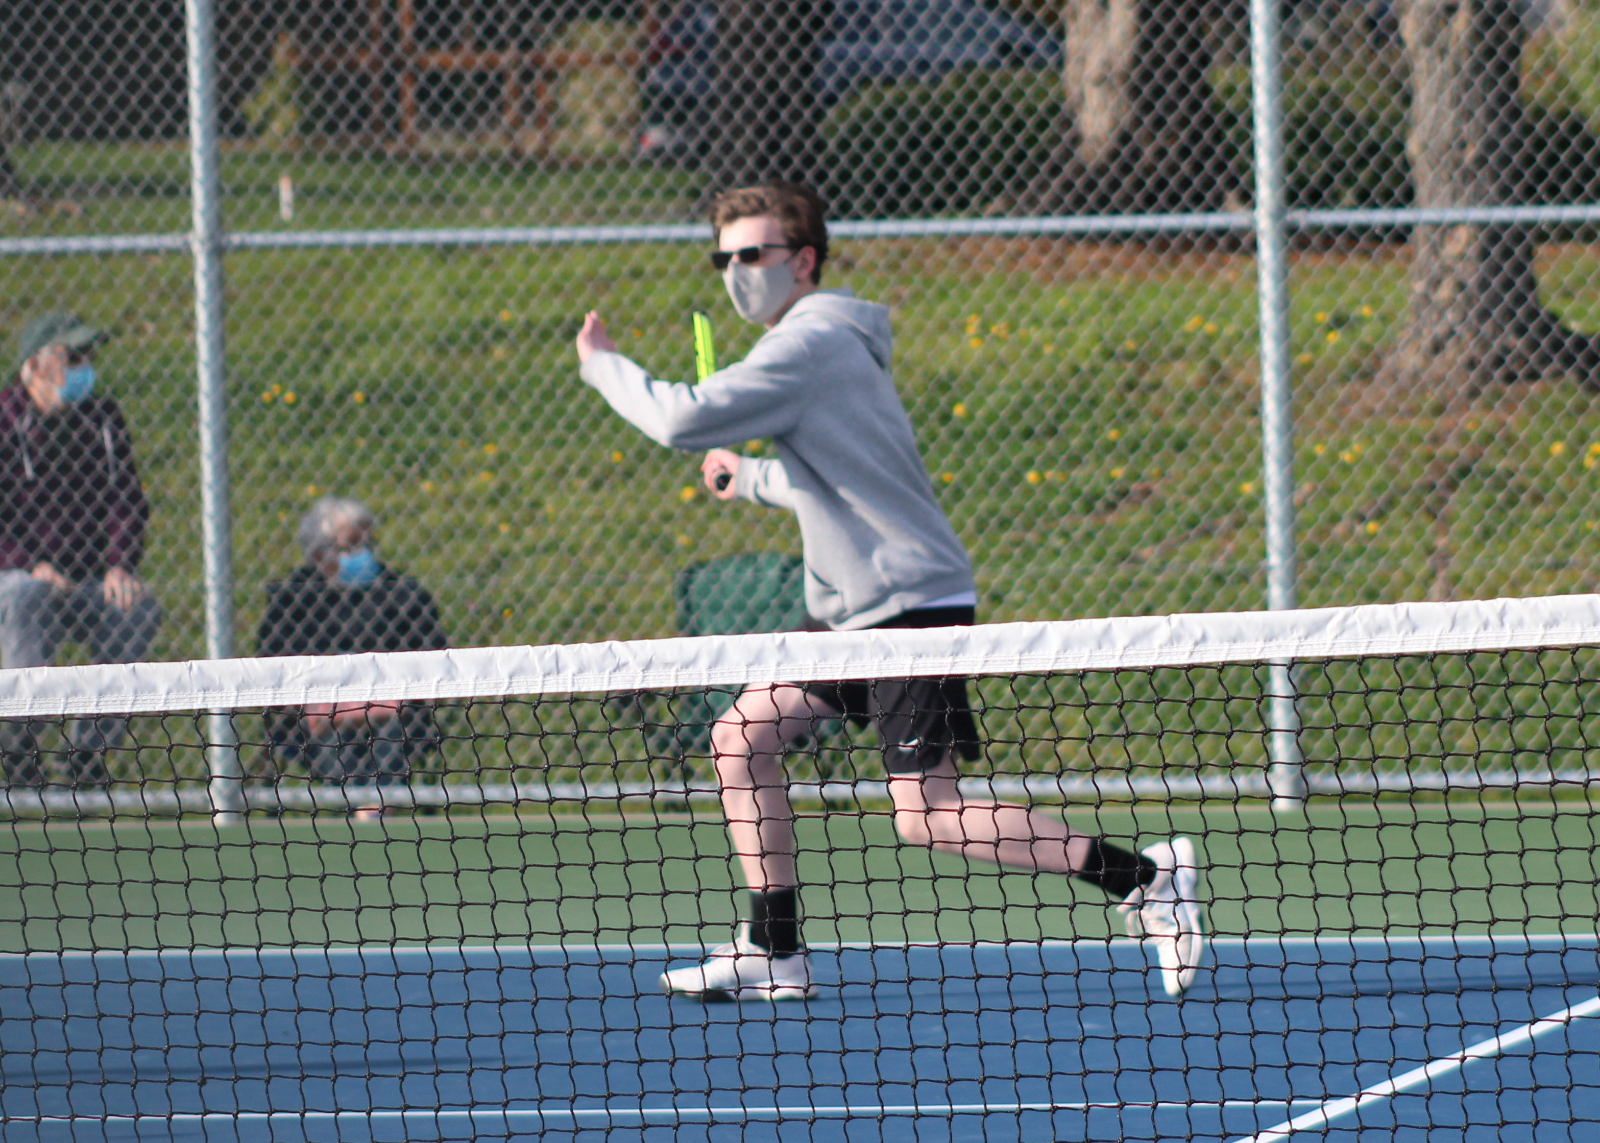 3/23 Boys Tennis win over Bothell